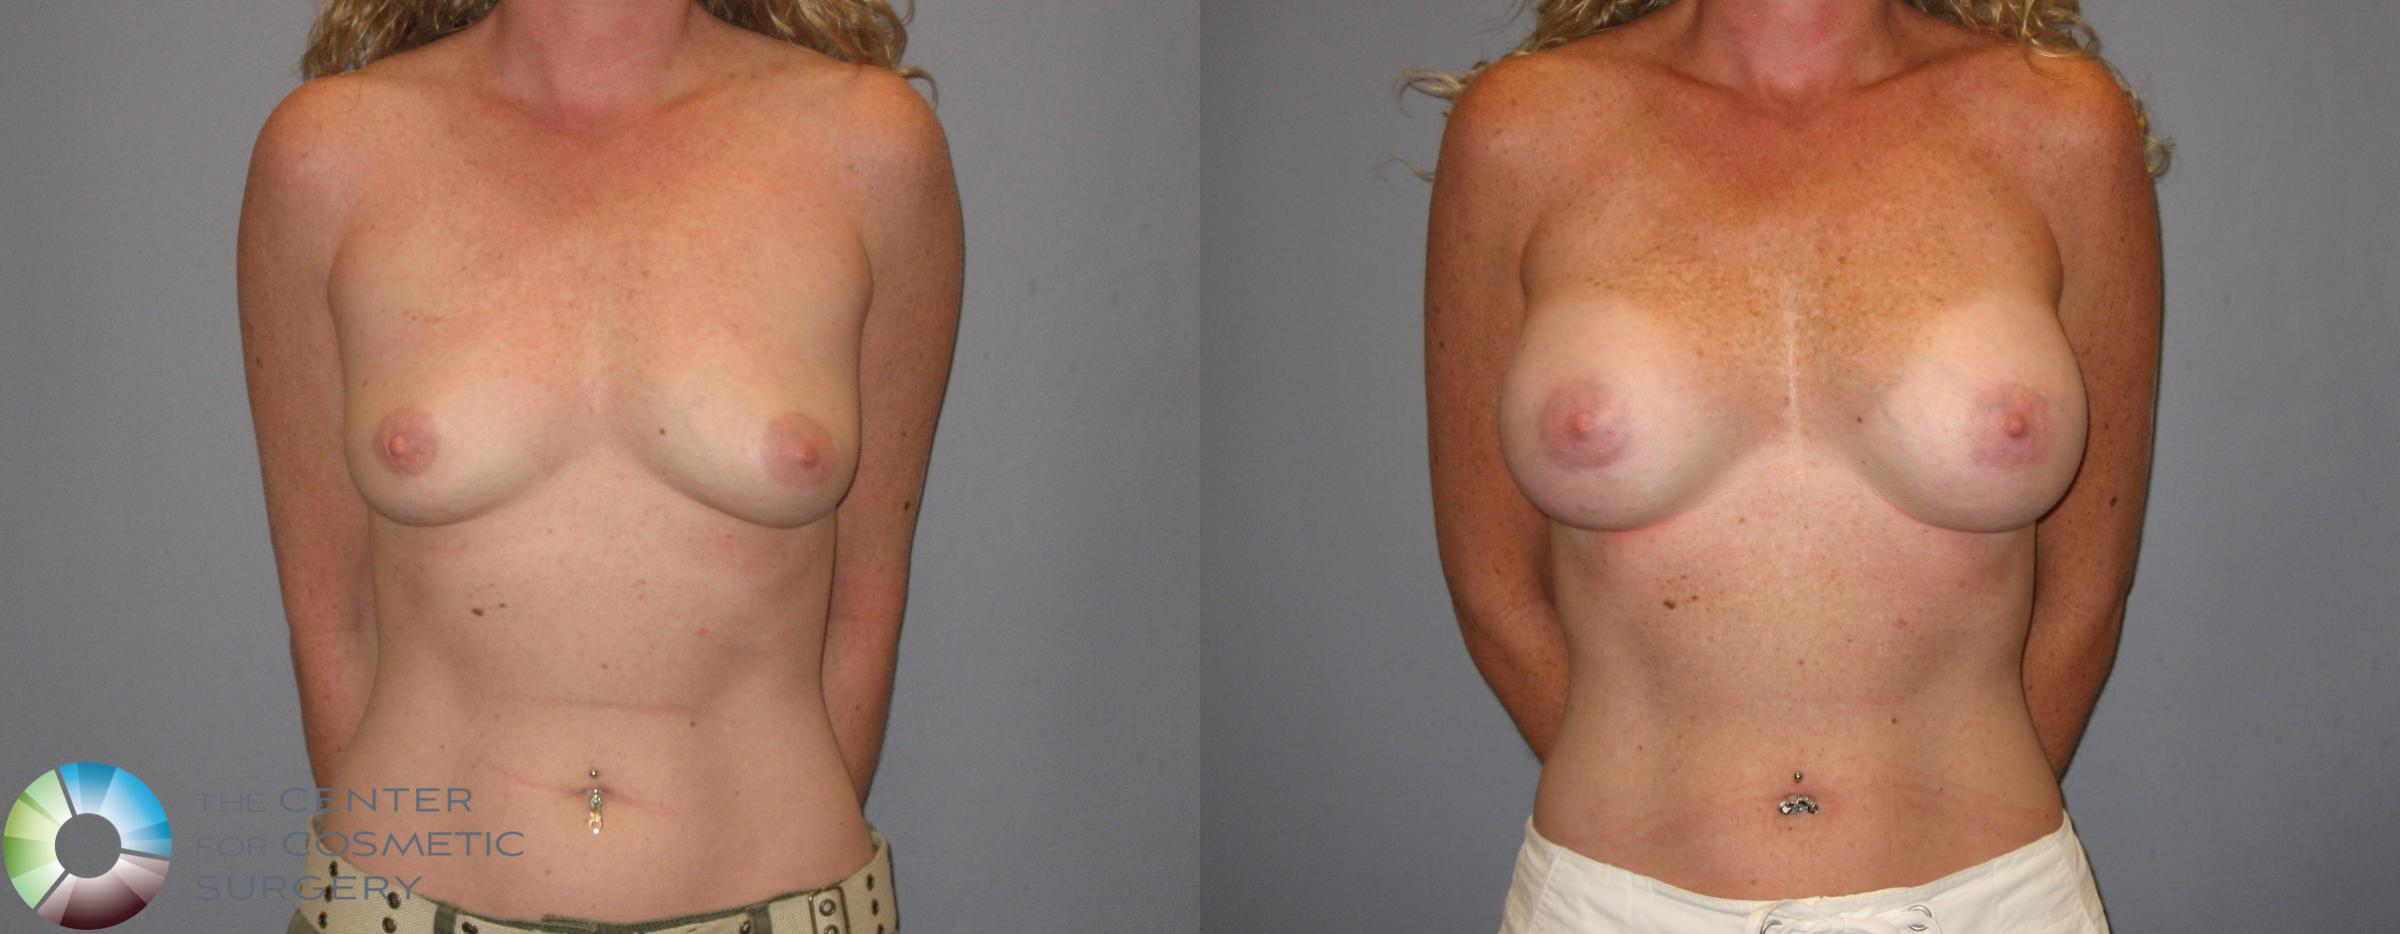 Breast Augmentation Case 186 Before & After View #2 | Golden, CO | The Center for Cosmetic Surgery